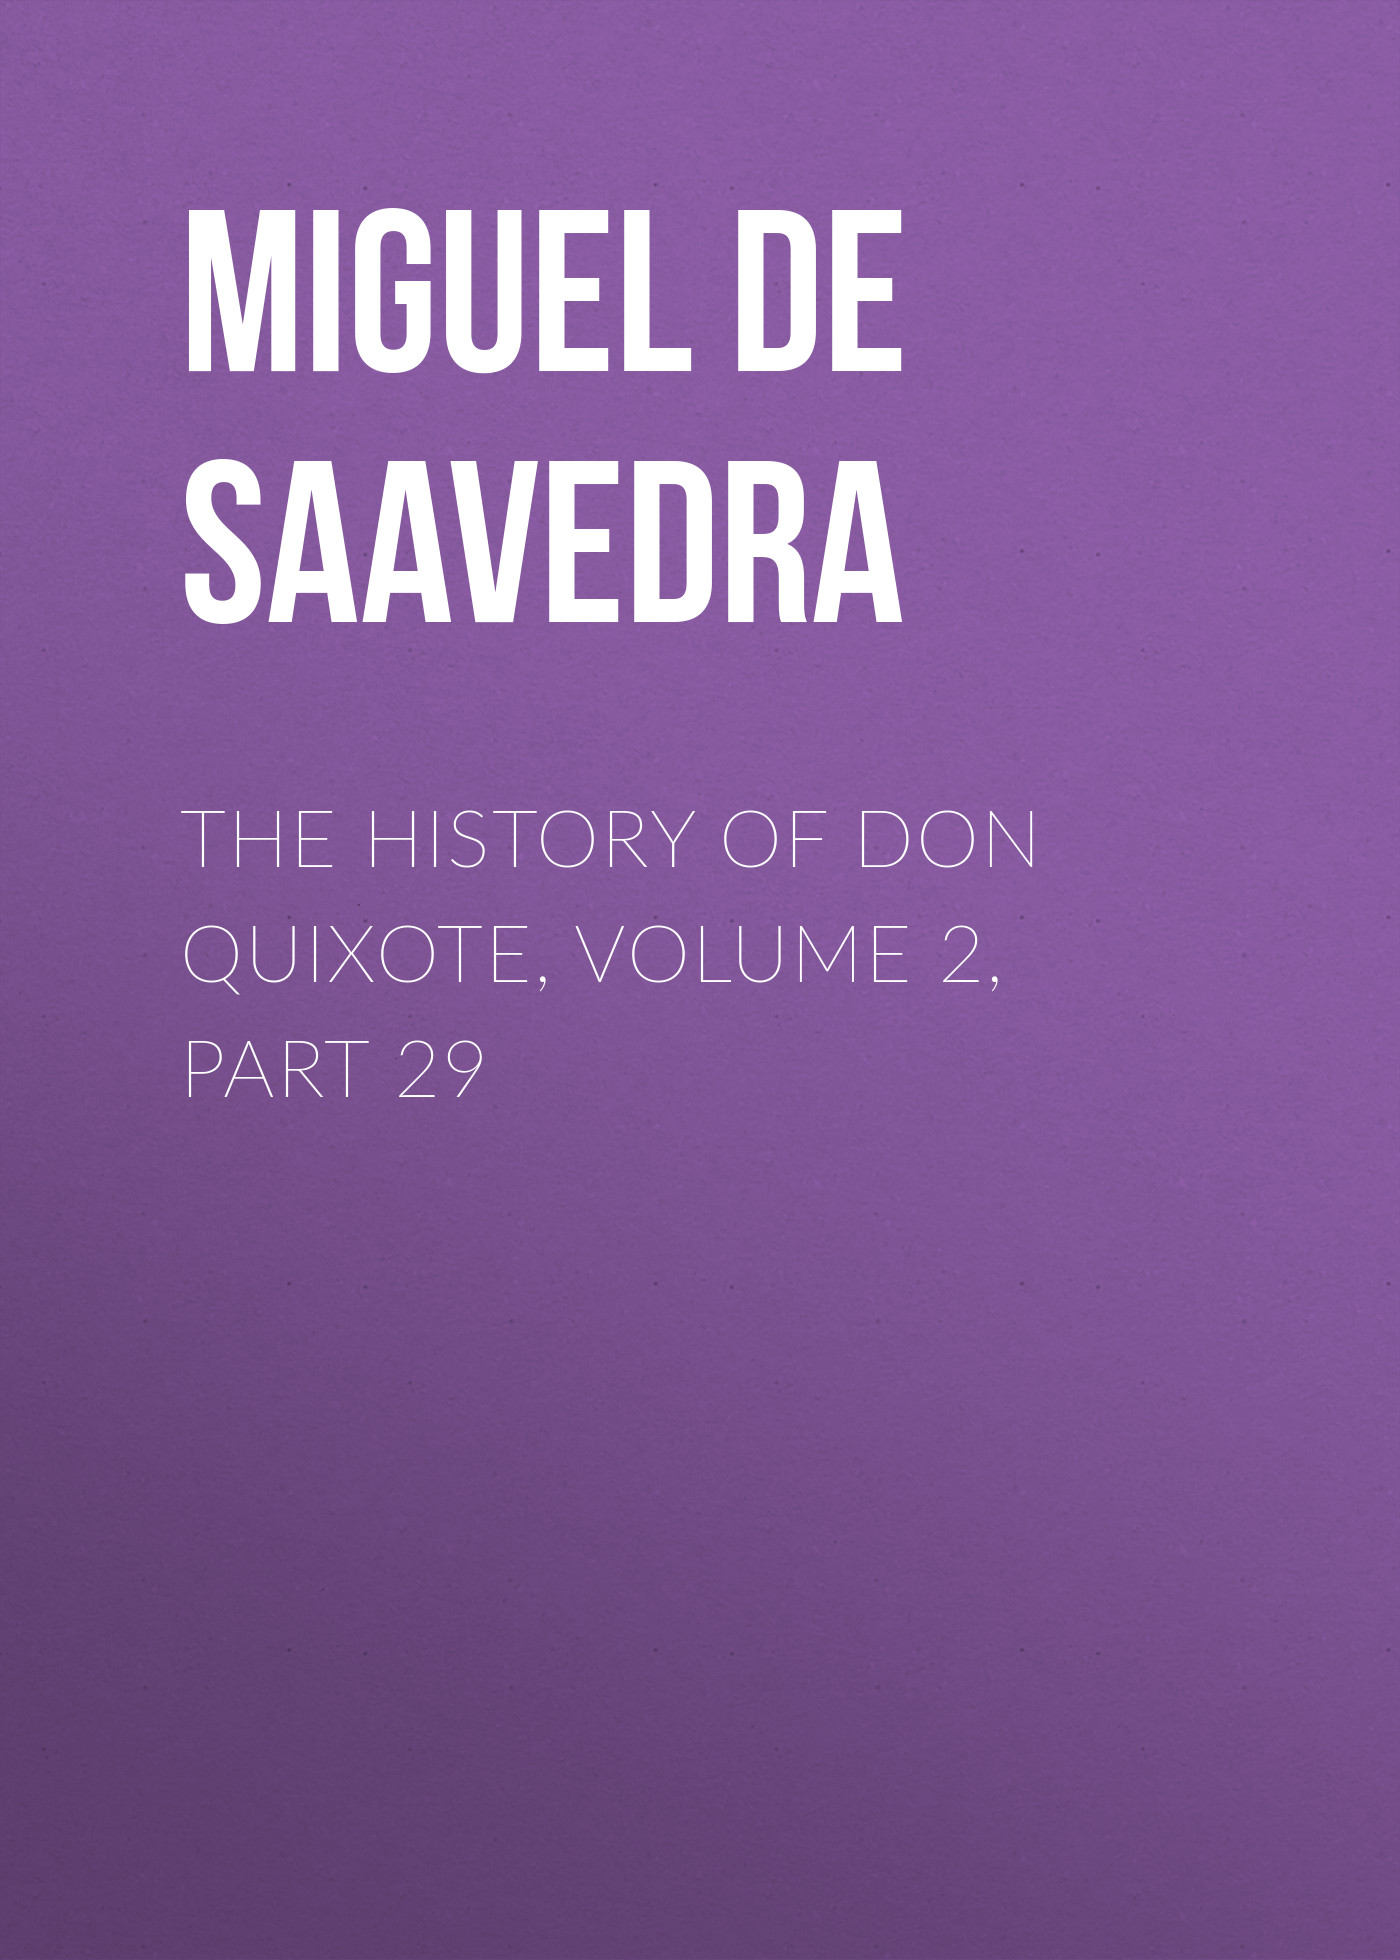 the history of don quixote volume 2 part 29